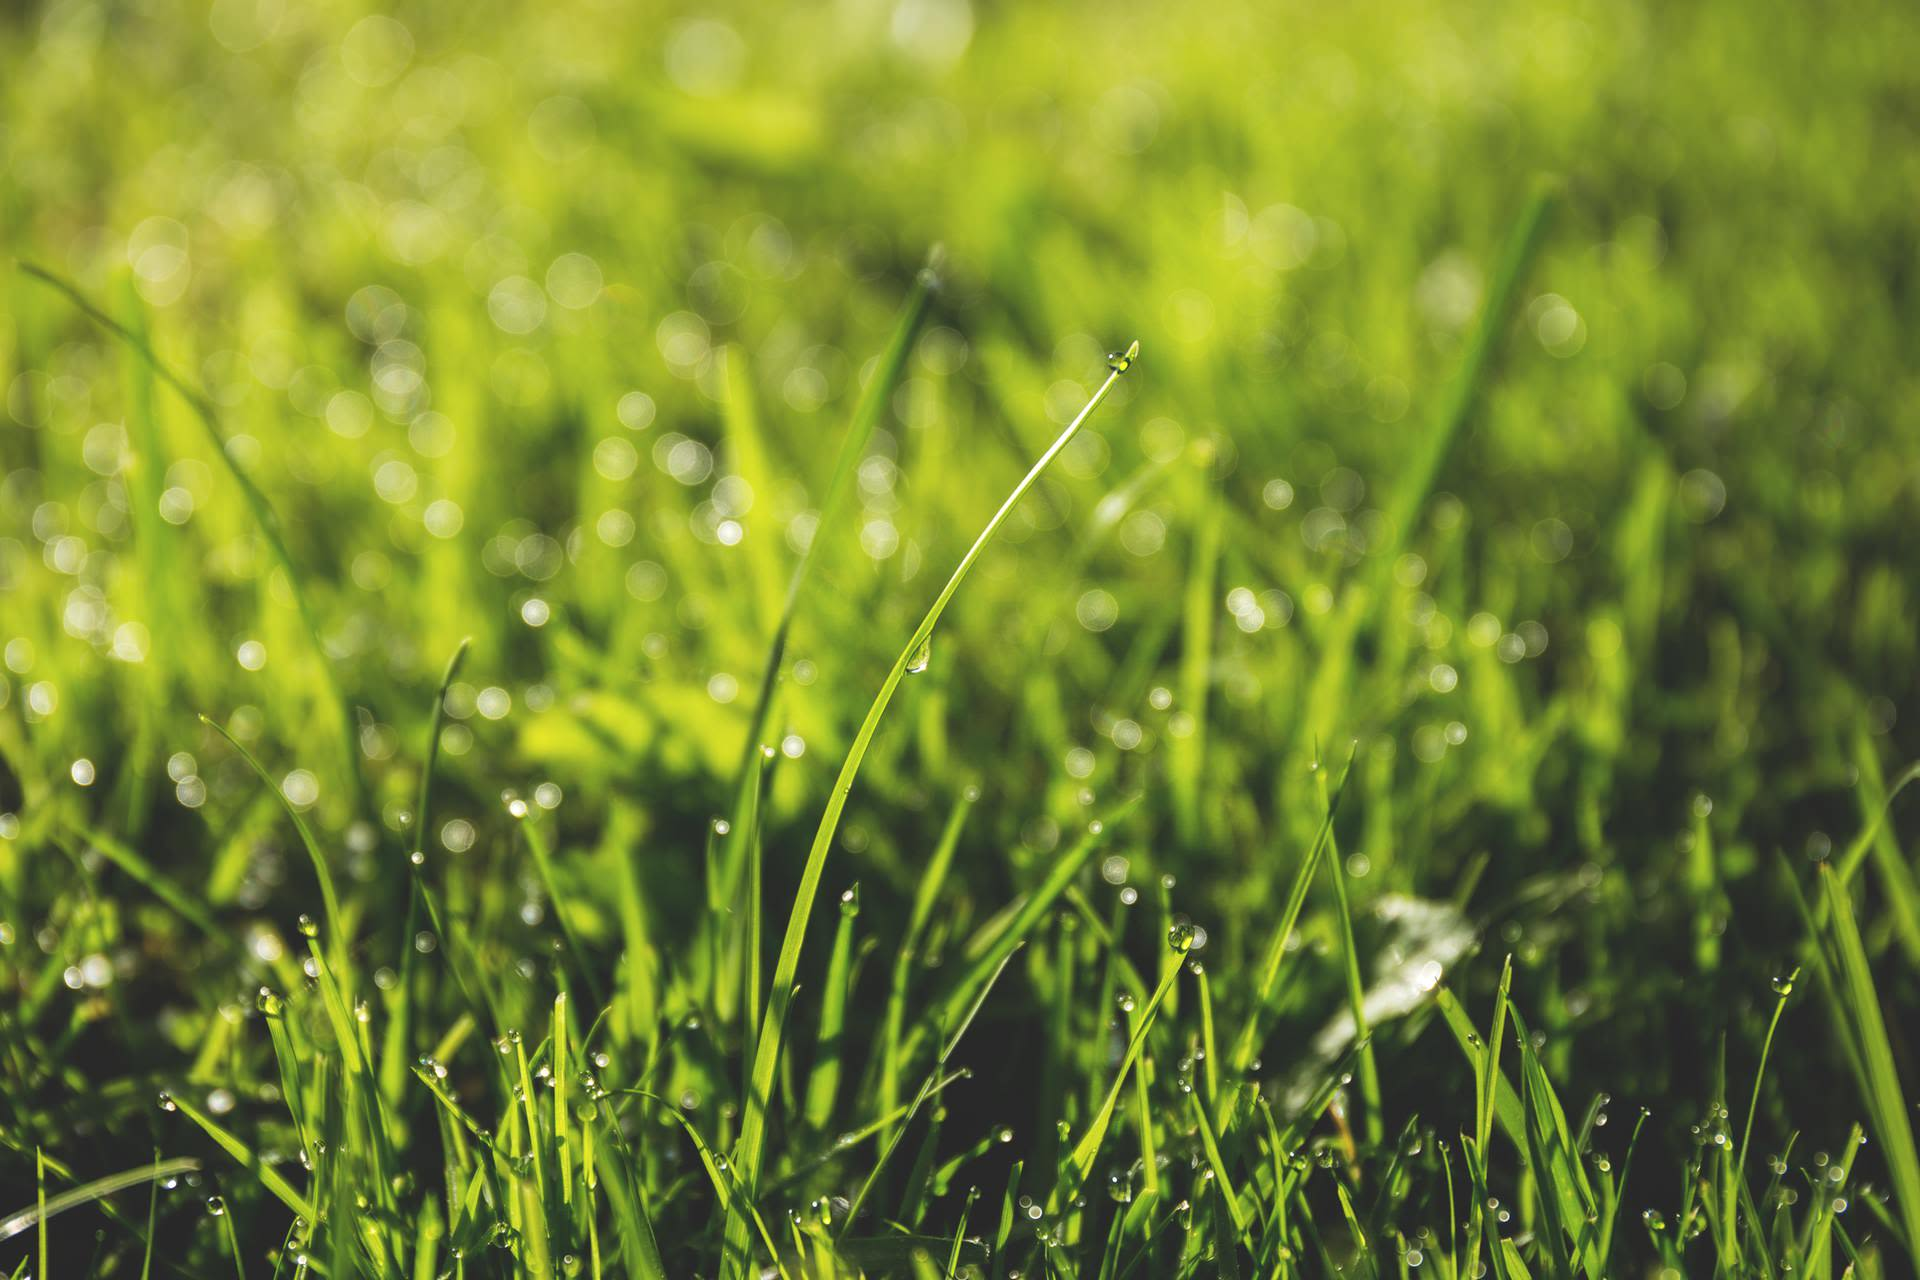 Taking Care of Your Pennsylvania Lawn Without Wasting Resources